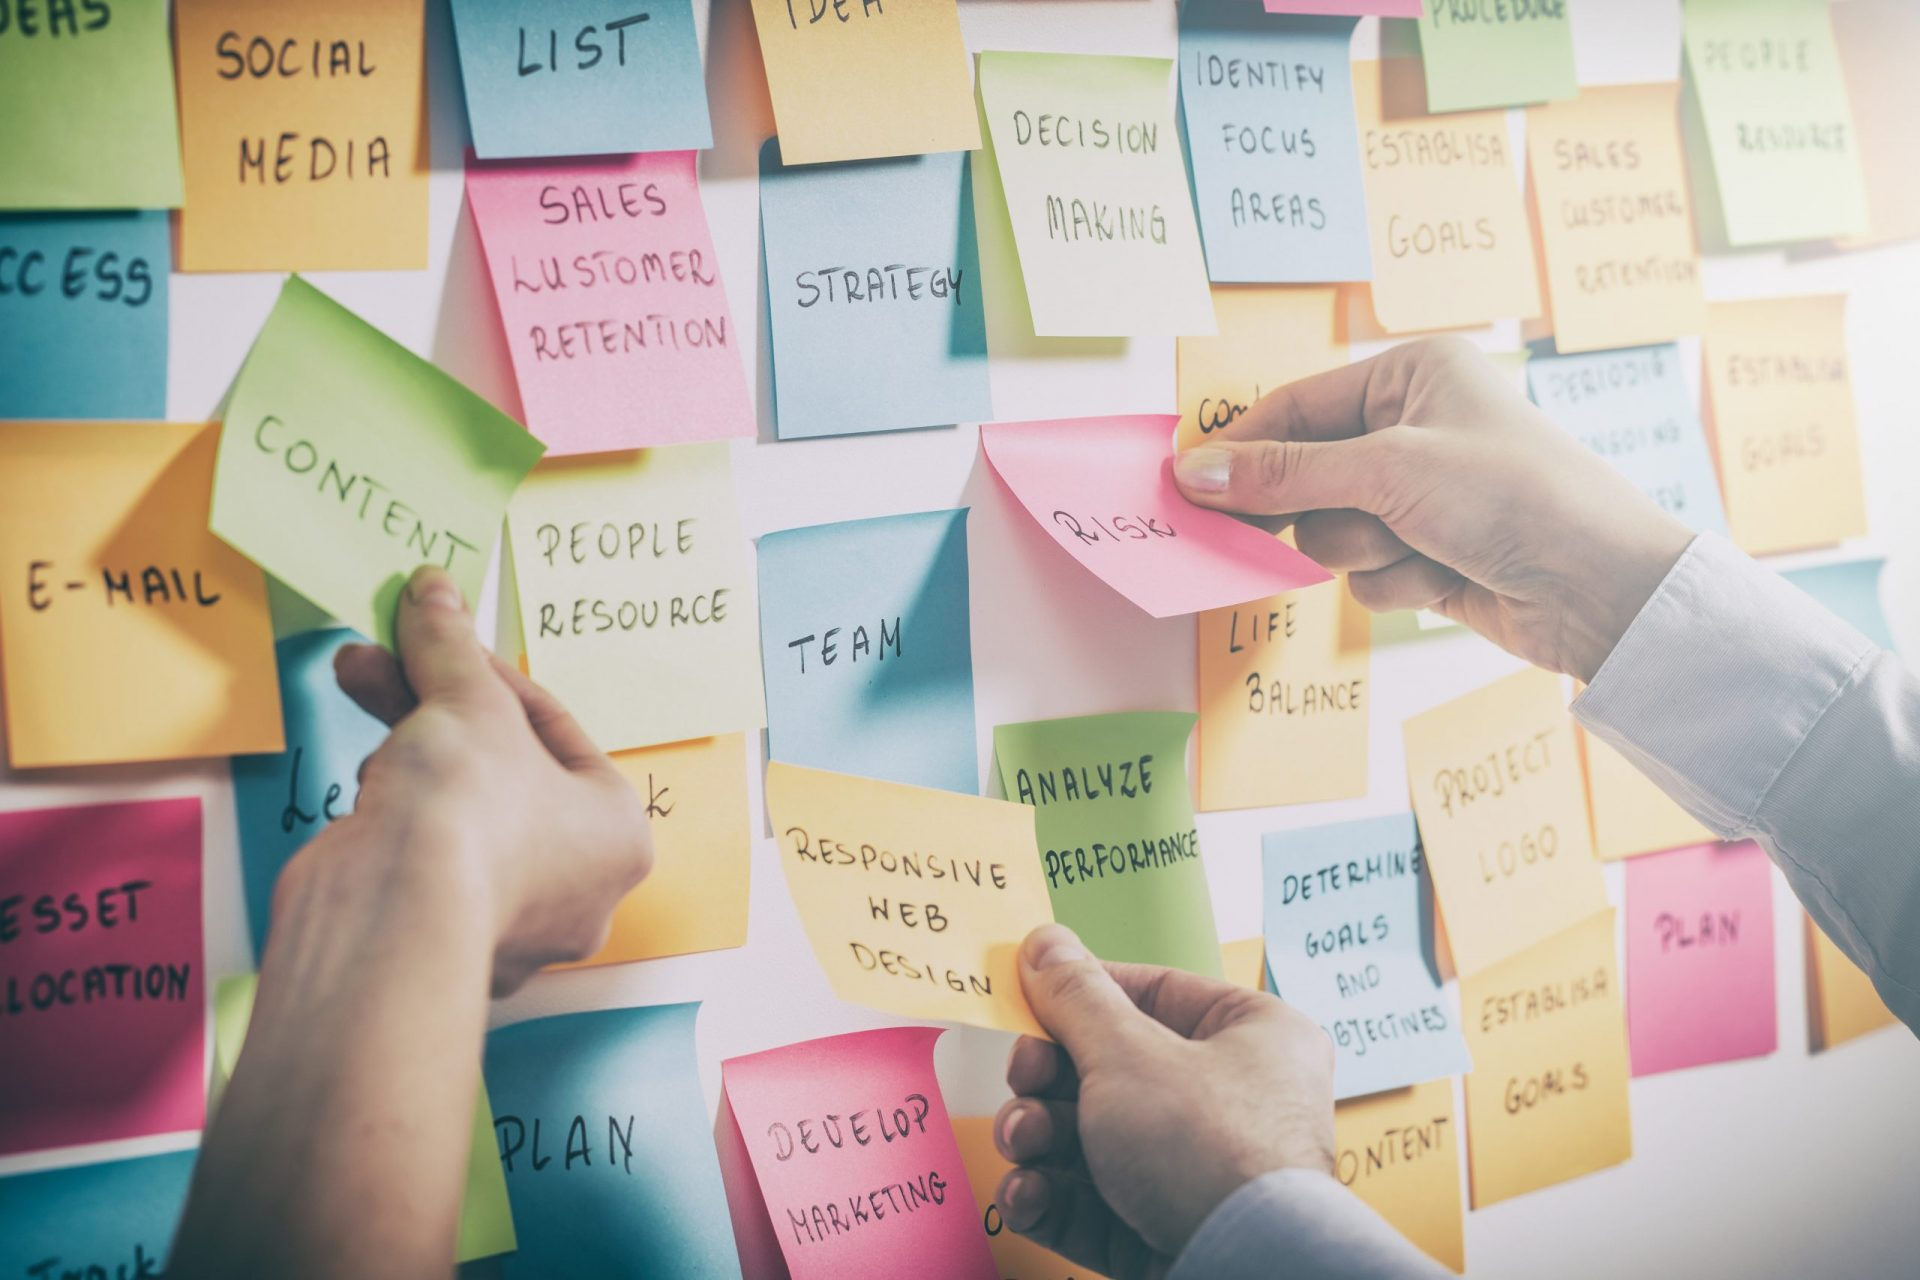 brainstorming brainstorm strategy workshop business note notes sticky - stock image